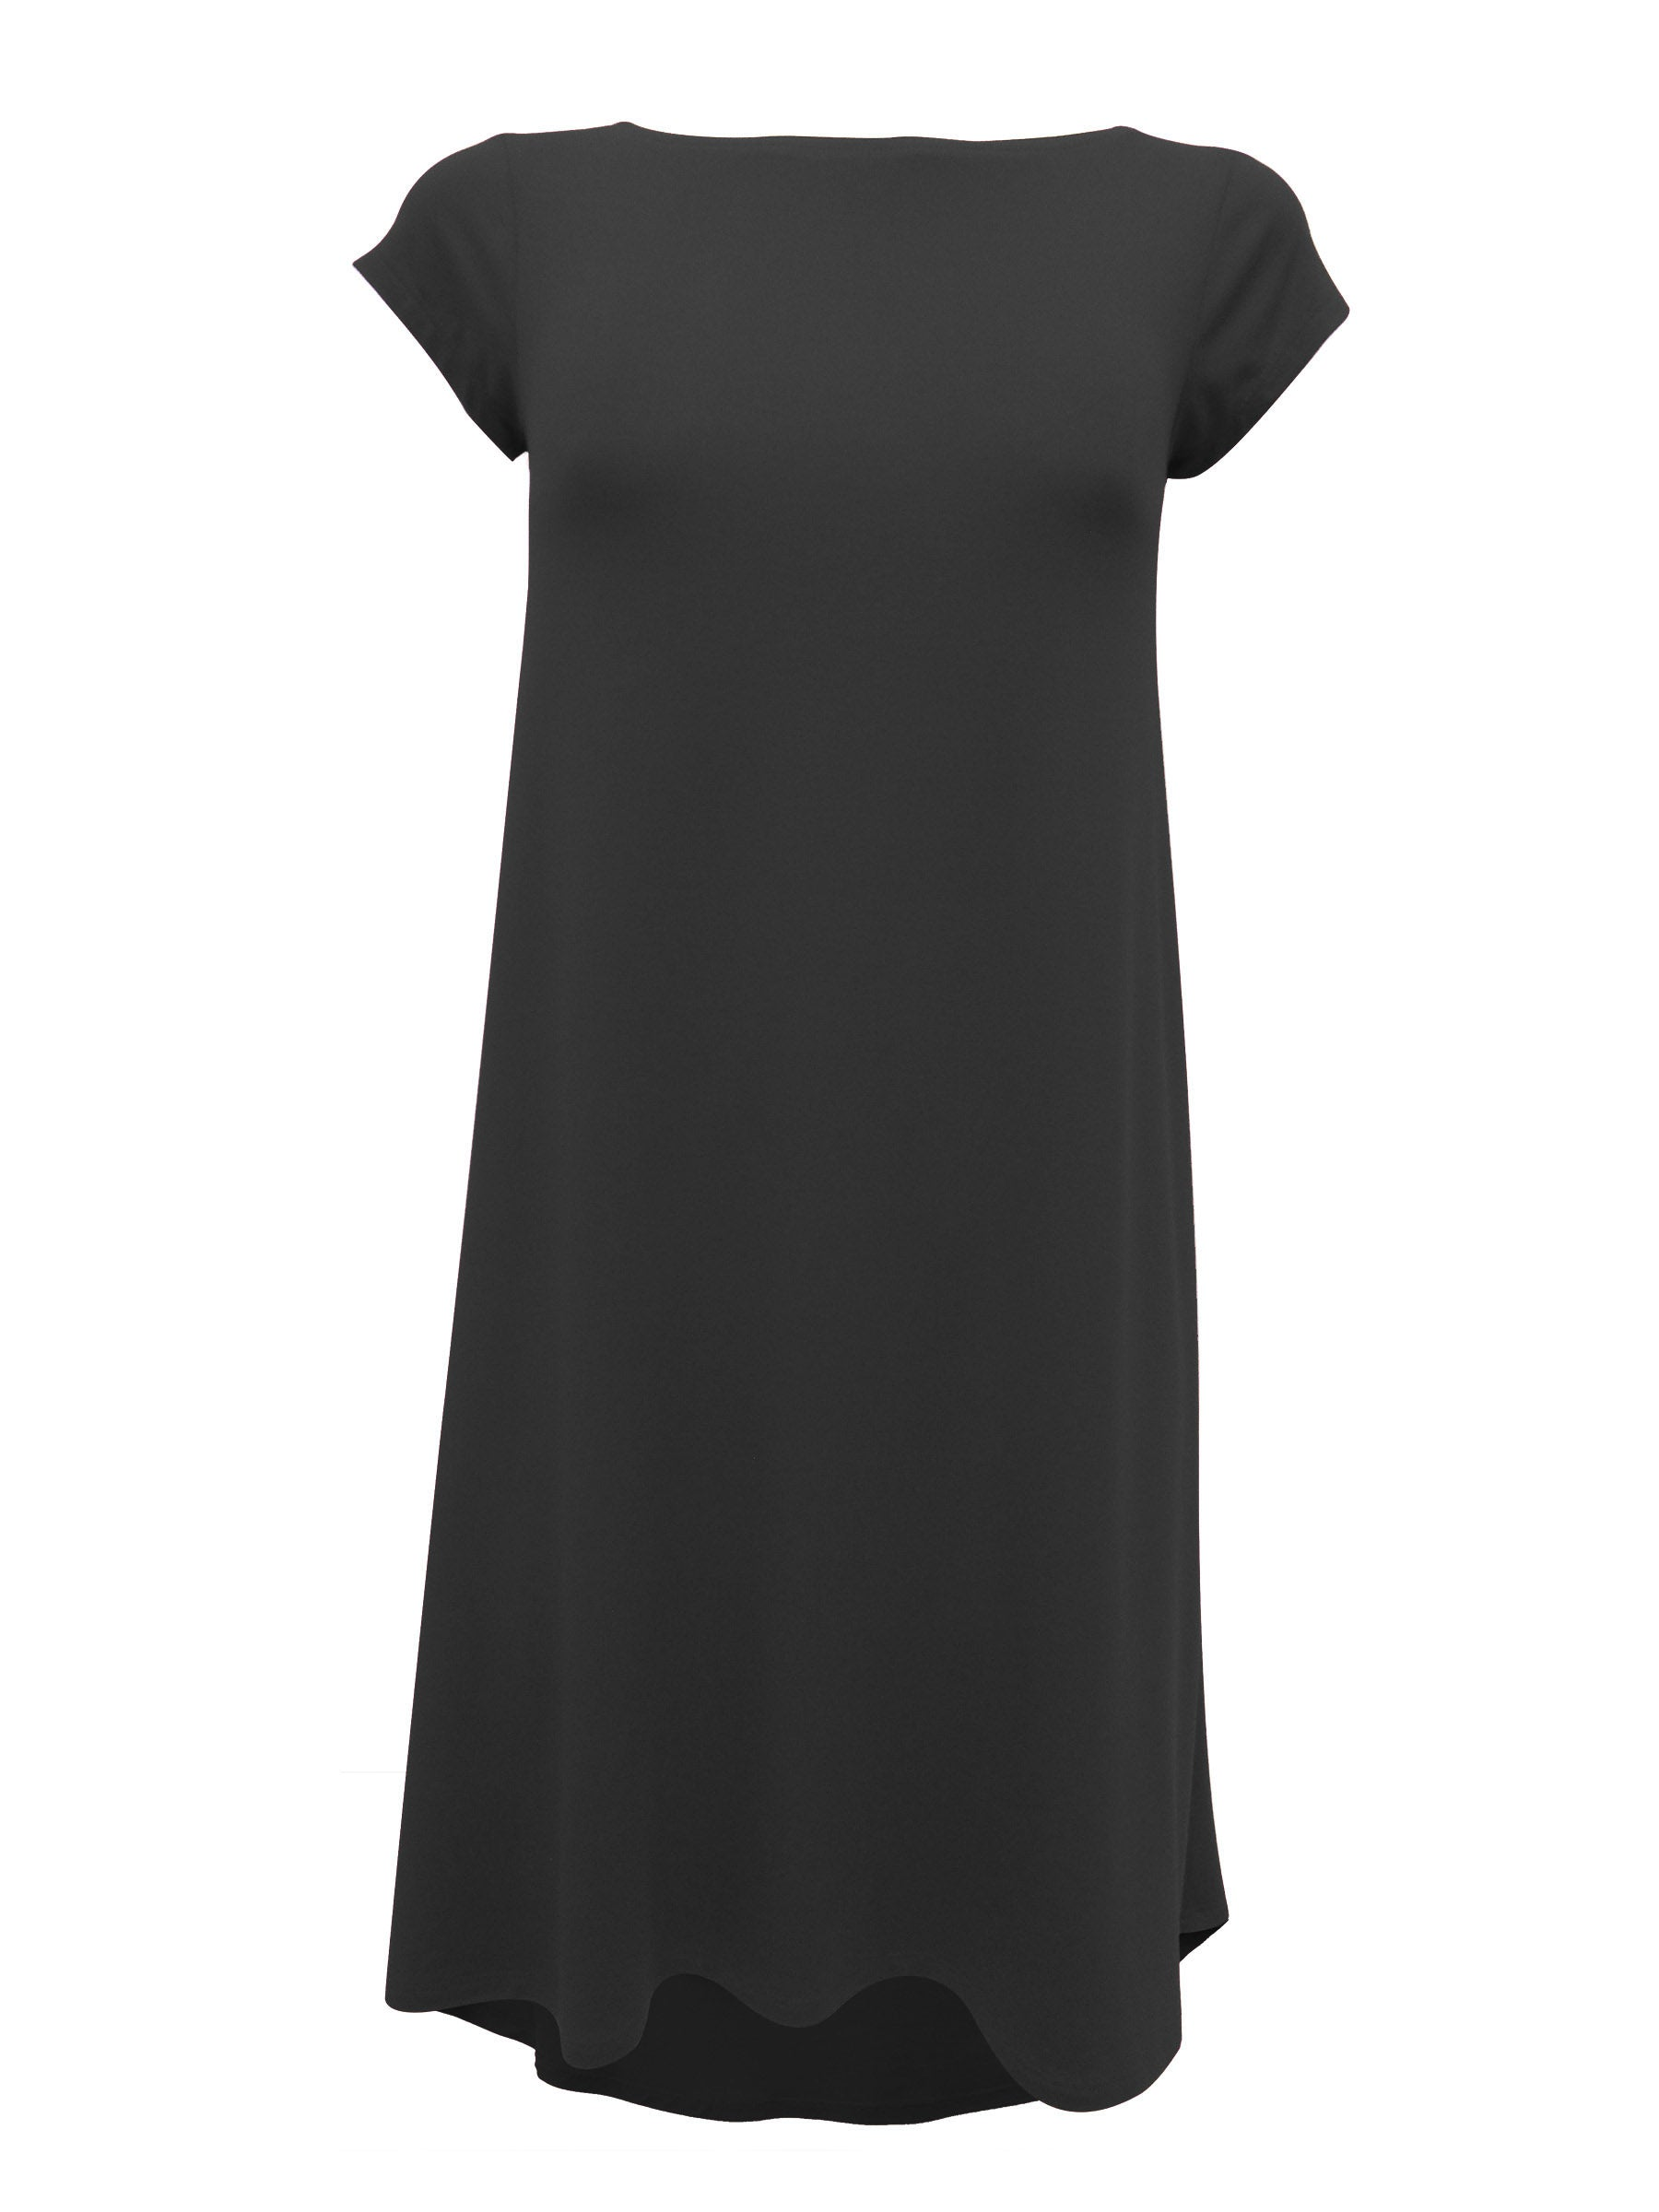 Hyda Dress by Moovment, Black, short sleeves, round neck, scooped neck at back, high-low hemline, bamboo, sizes XS to XXL, made in Quebec